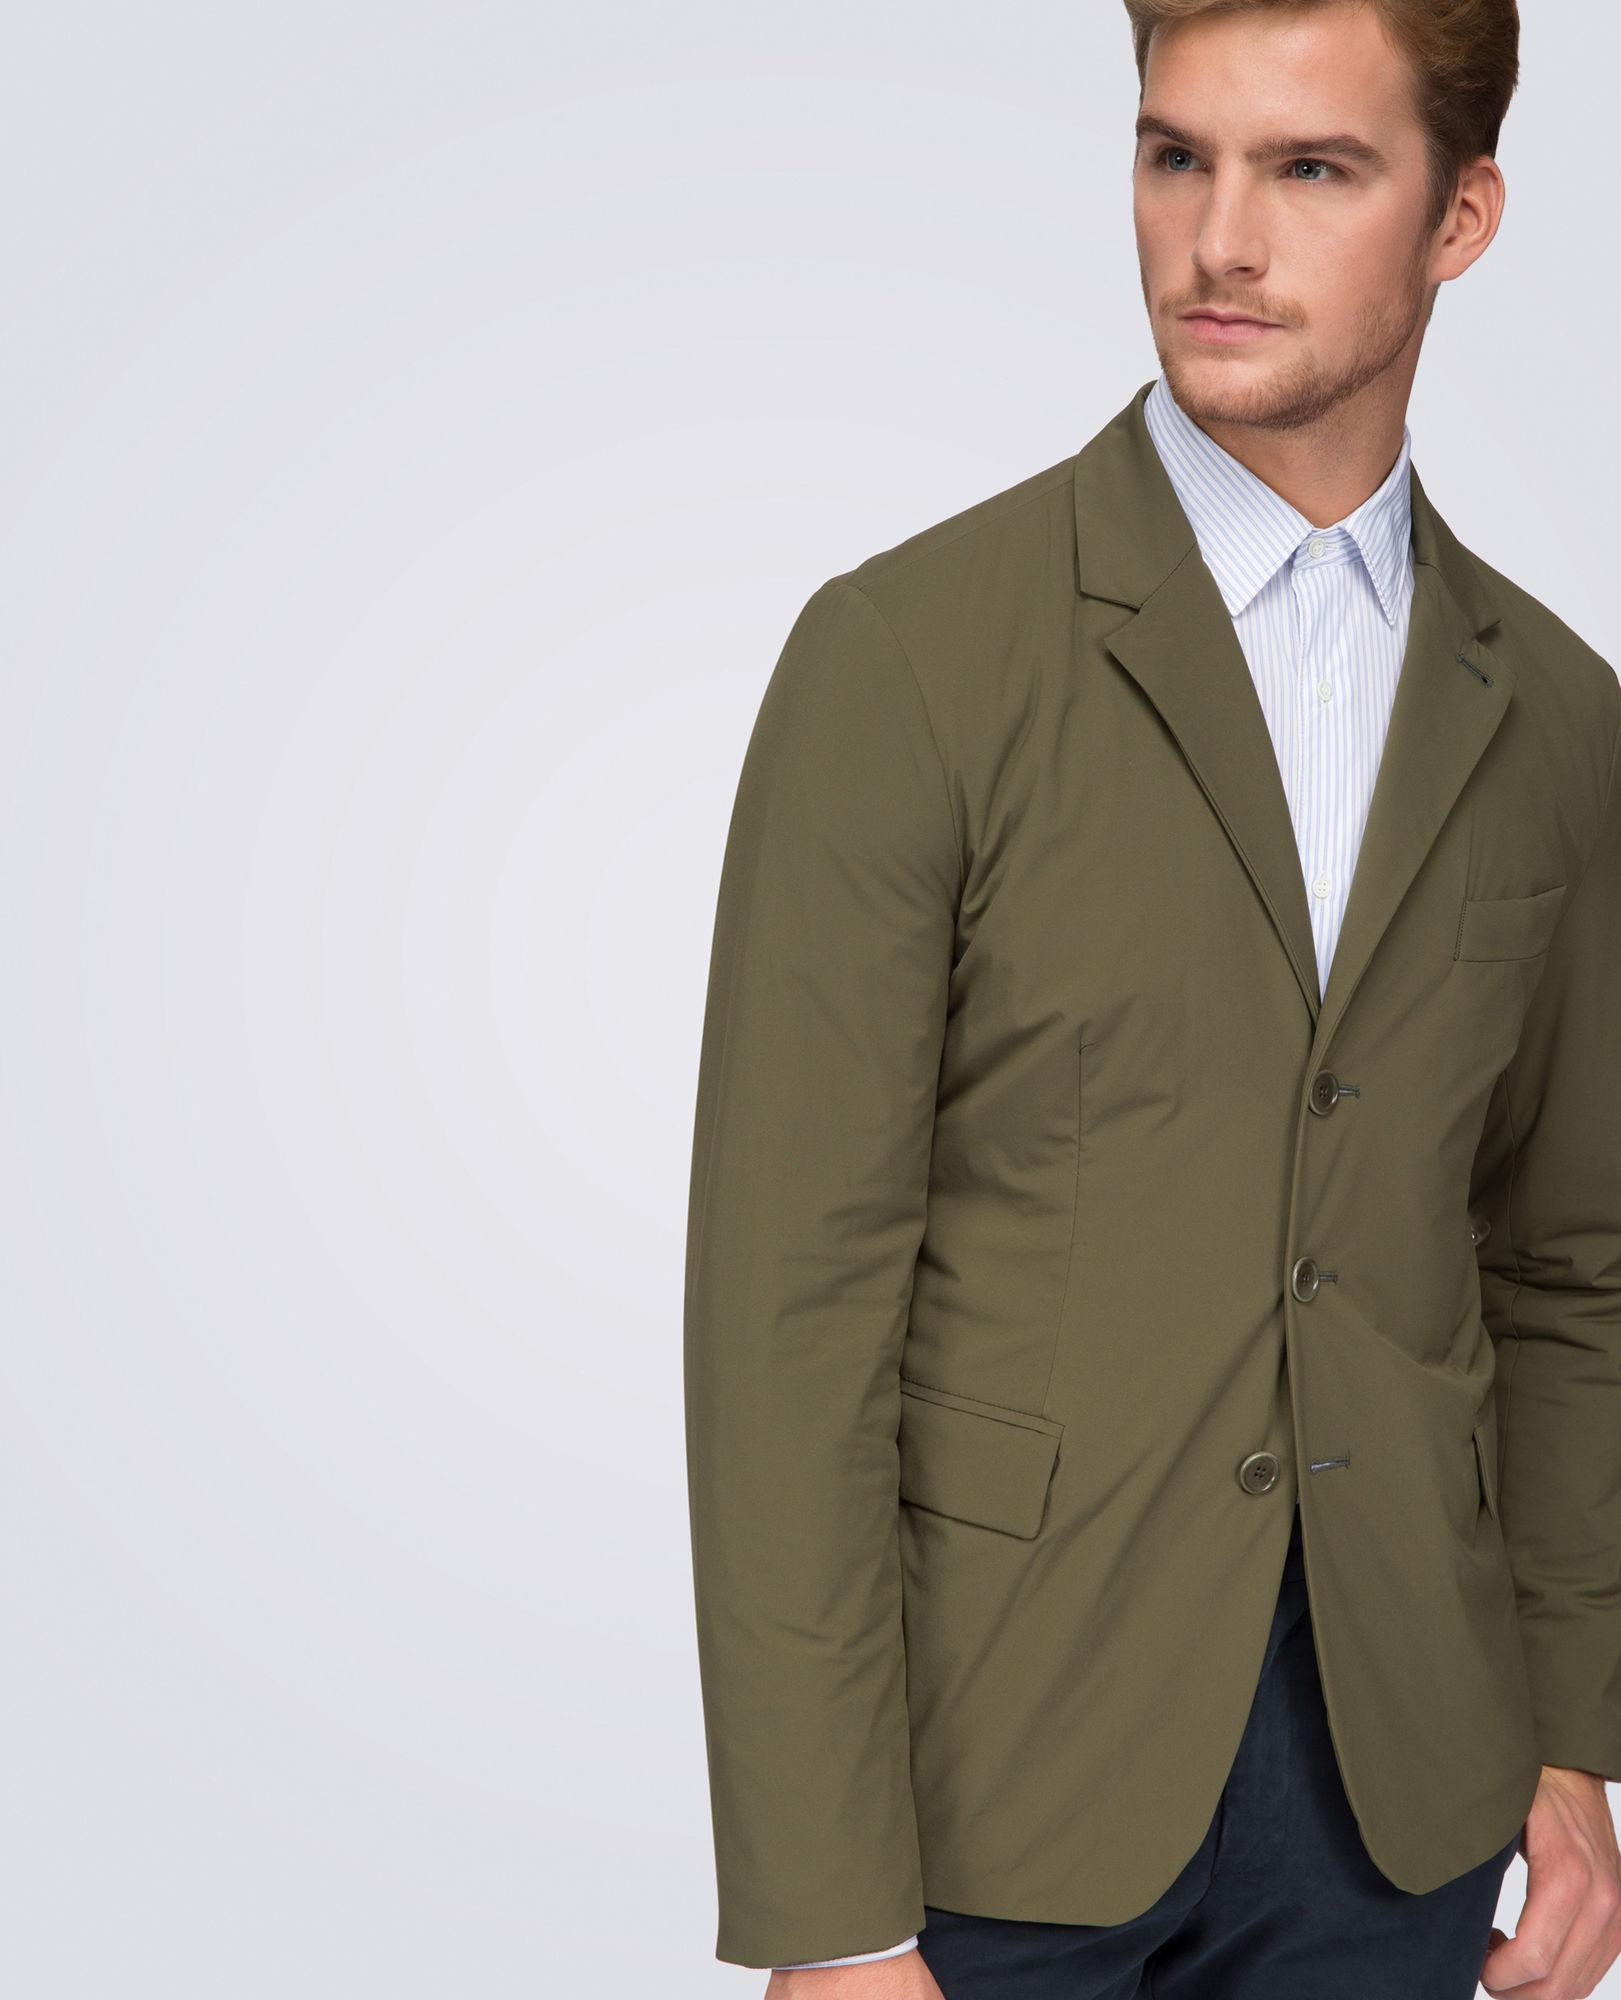 SUITS AND JACKETS - Blazers Aspesi Clearance Collections Discount Top Quality aJtkR